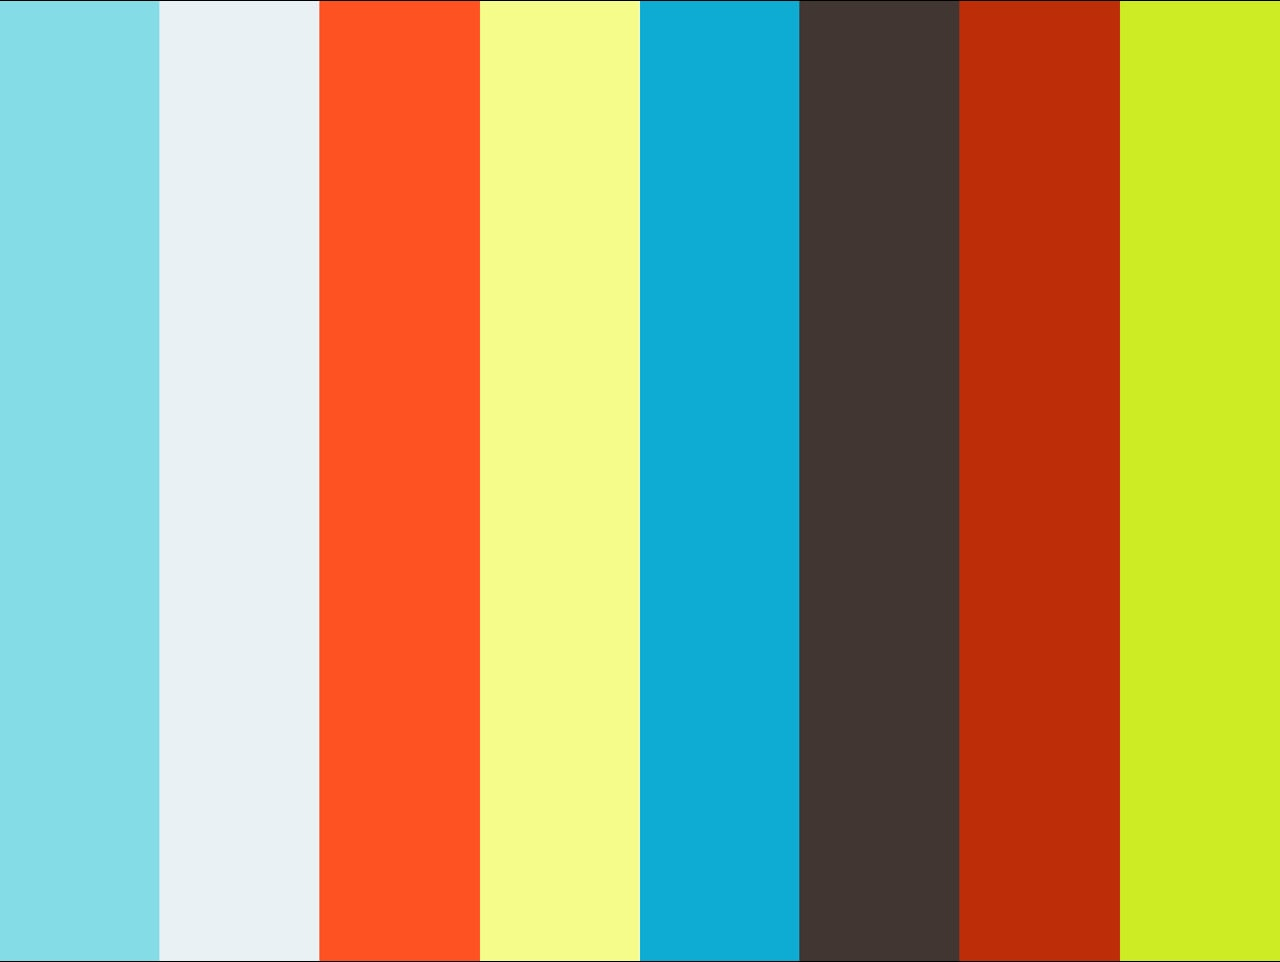 Quarry Park memorial 360 Little planet view